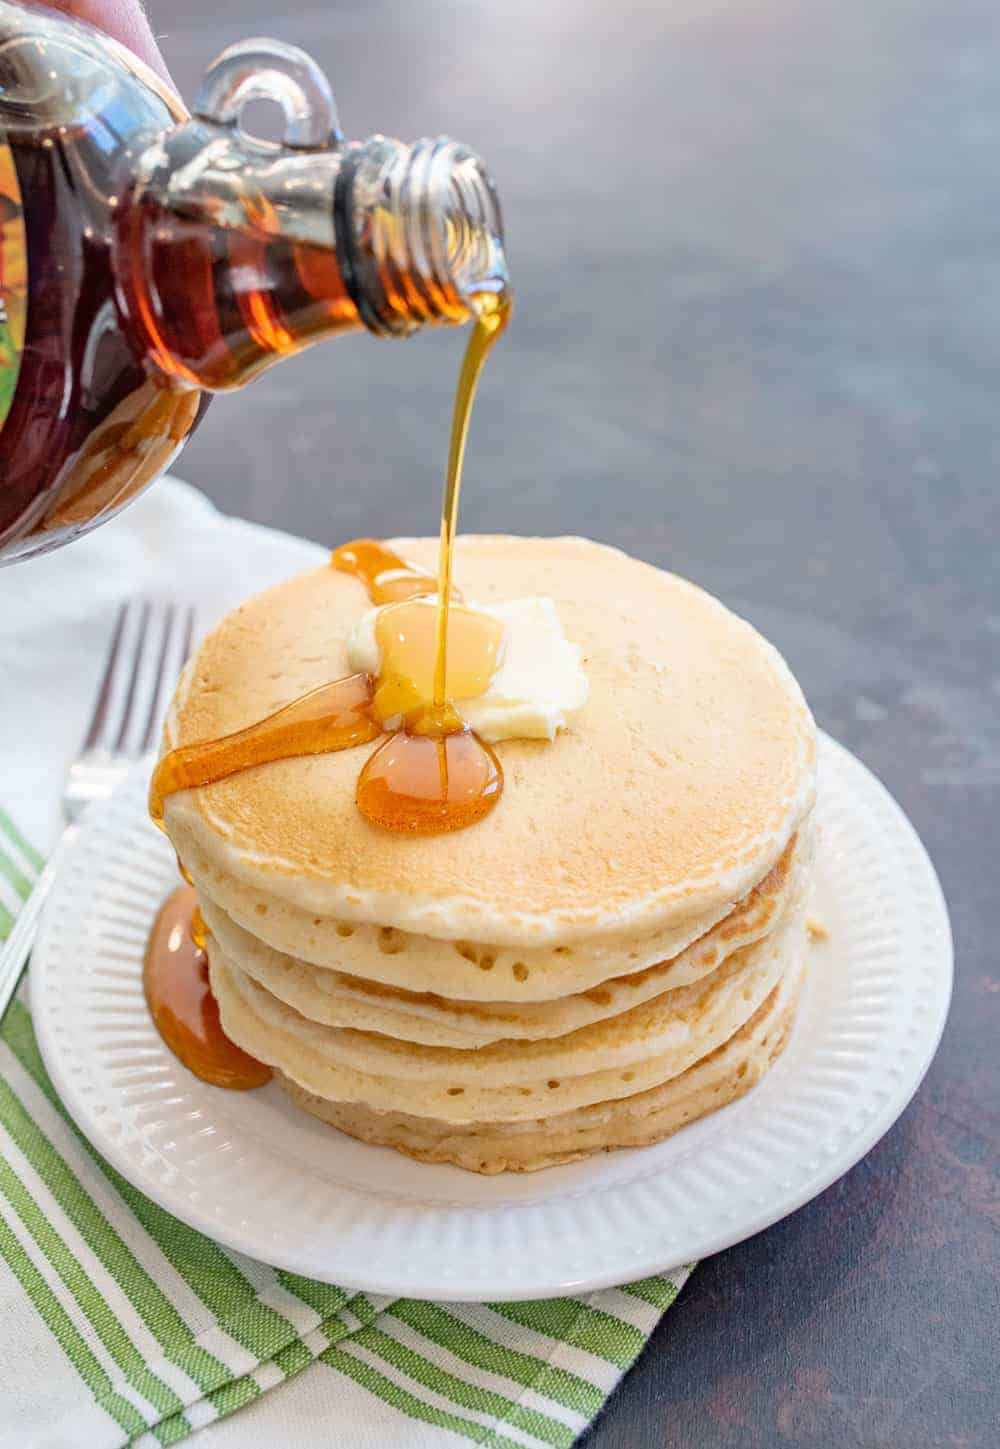 Image of Homemade Whole Wheat Pancakes